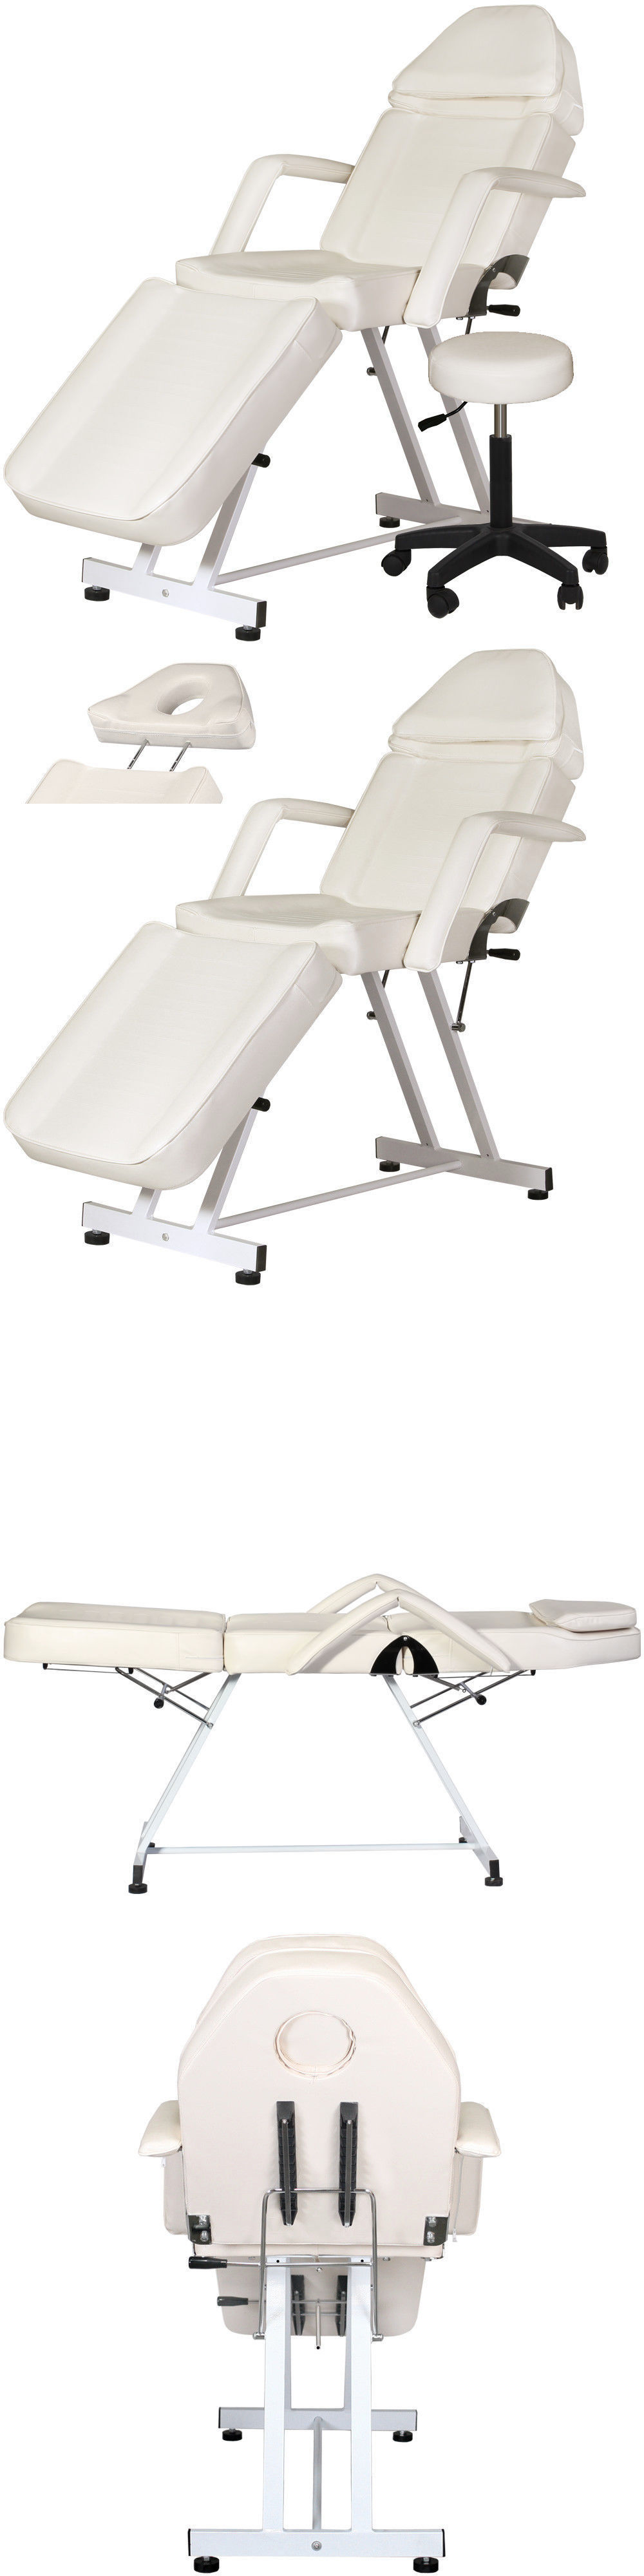 Massage Tables and Chairs White Facial Chair Massage Tattoo Stool